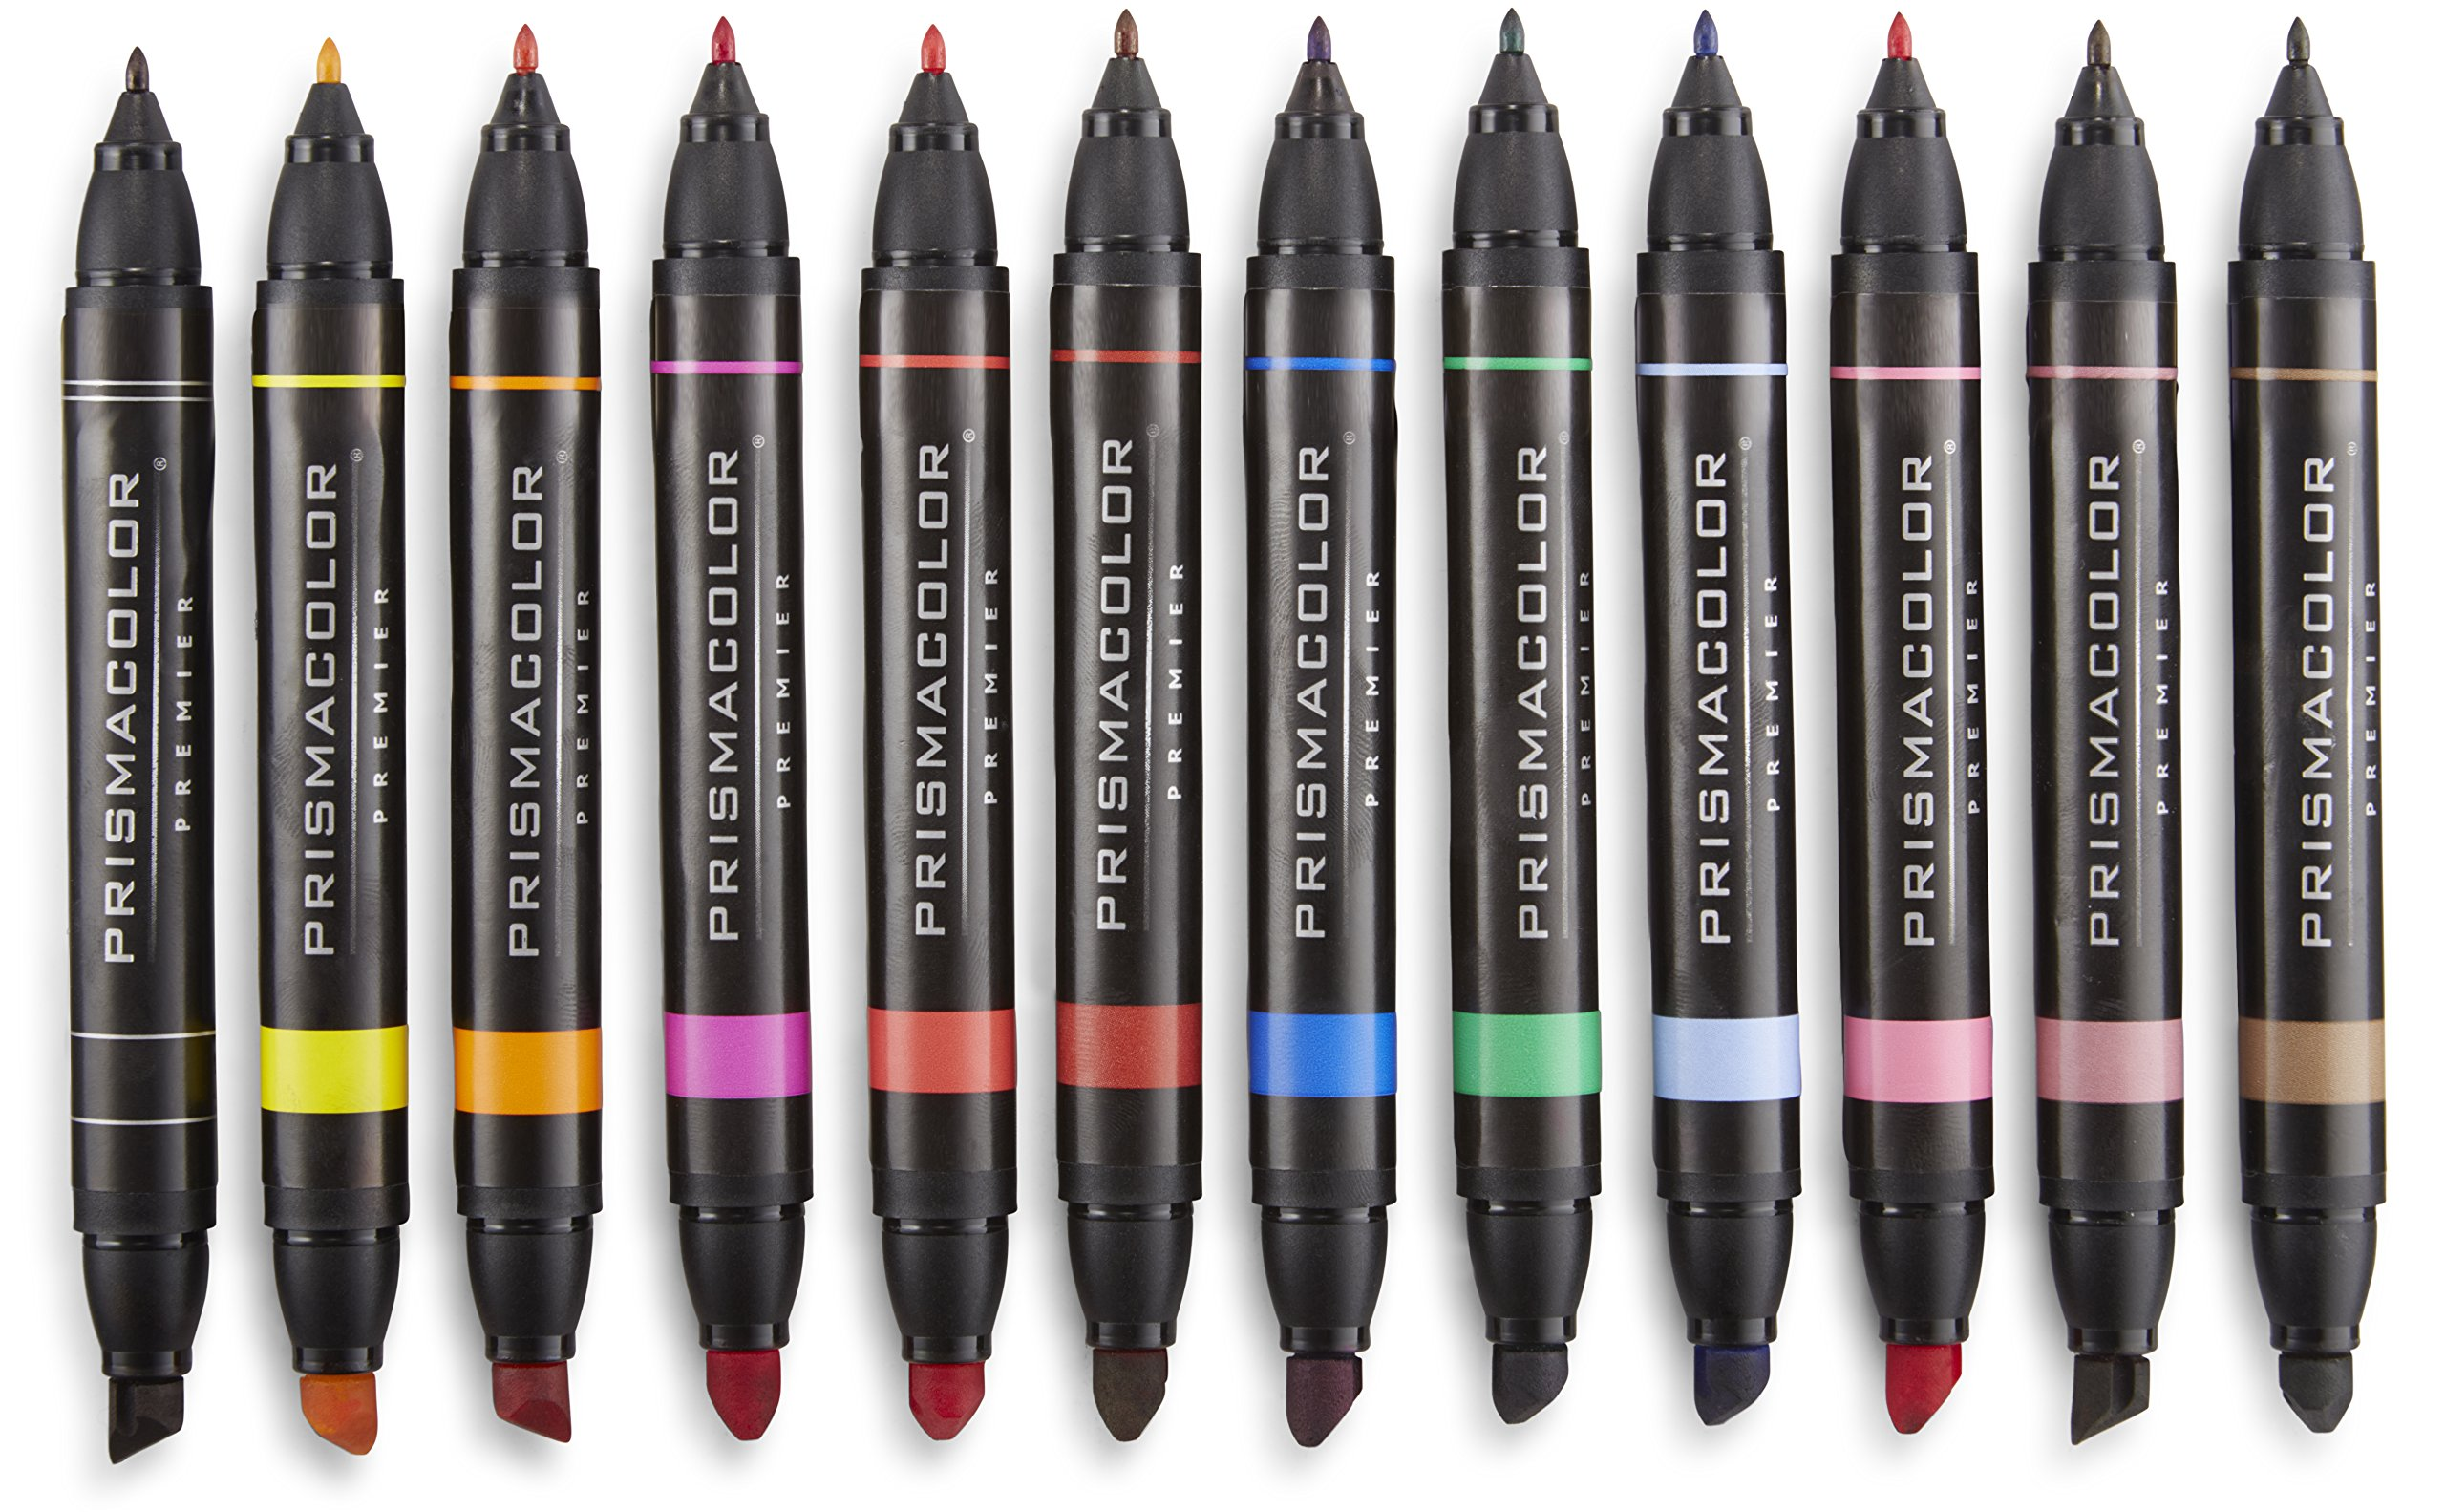 Prismacolor Premier Double-Ended Art Markers, Fine and Chisel Tip, 48-Count by Prismacolor (Image #3)